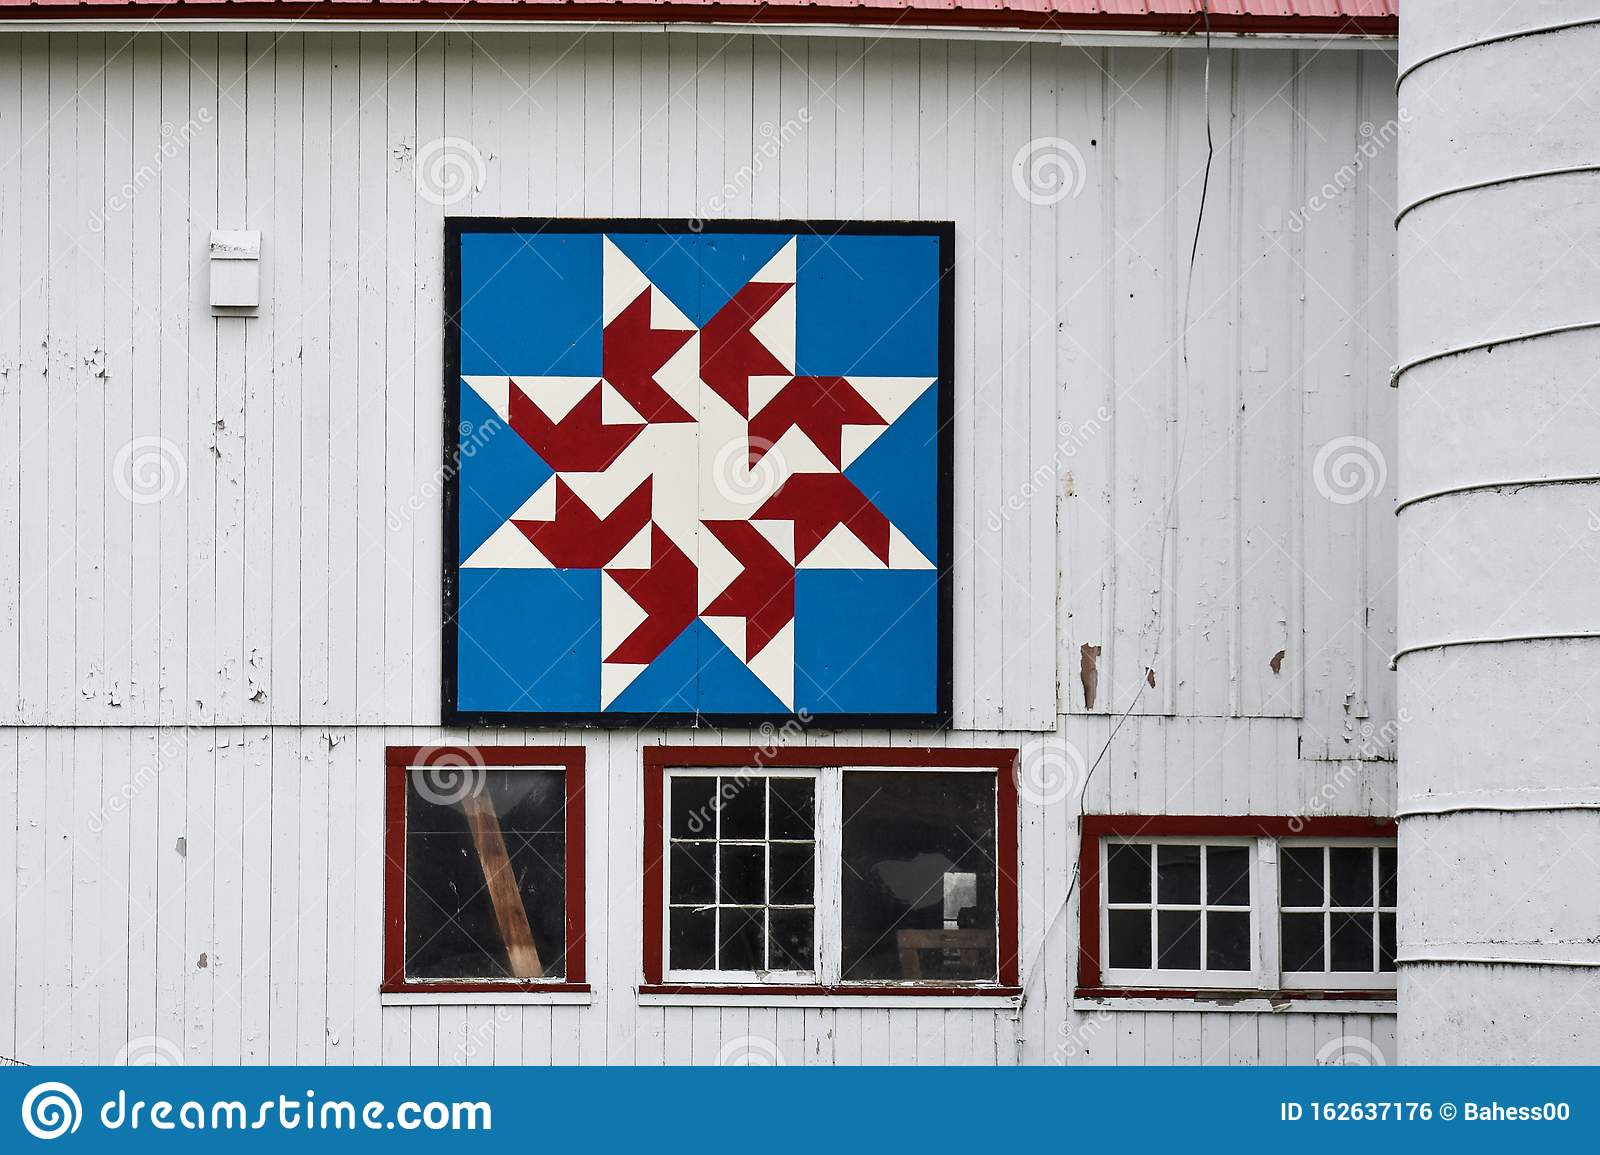 Red, White, And Blue Quilt Barn Stock Photo - Image of ...